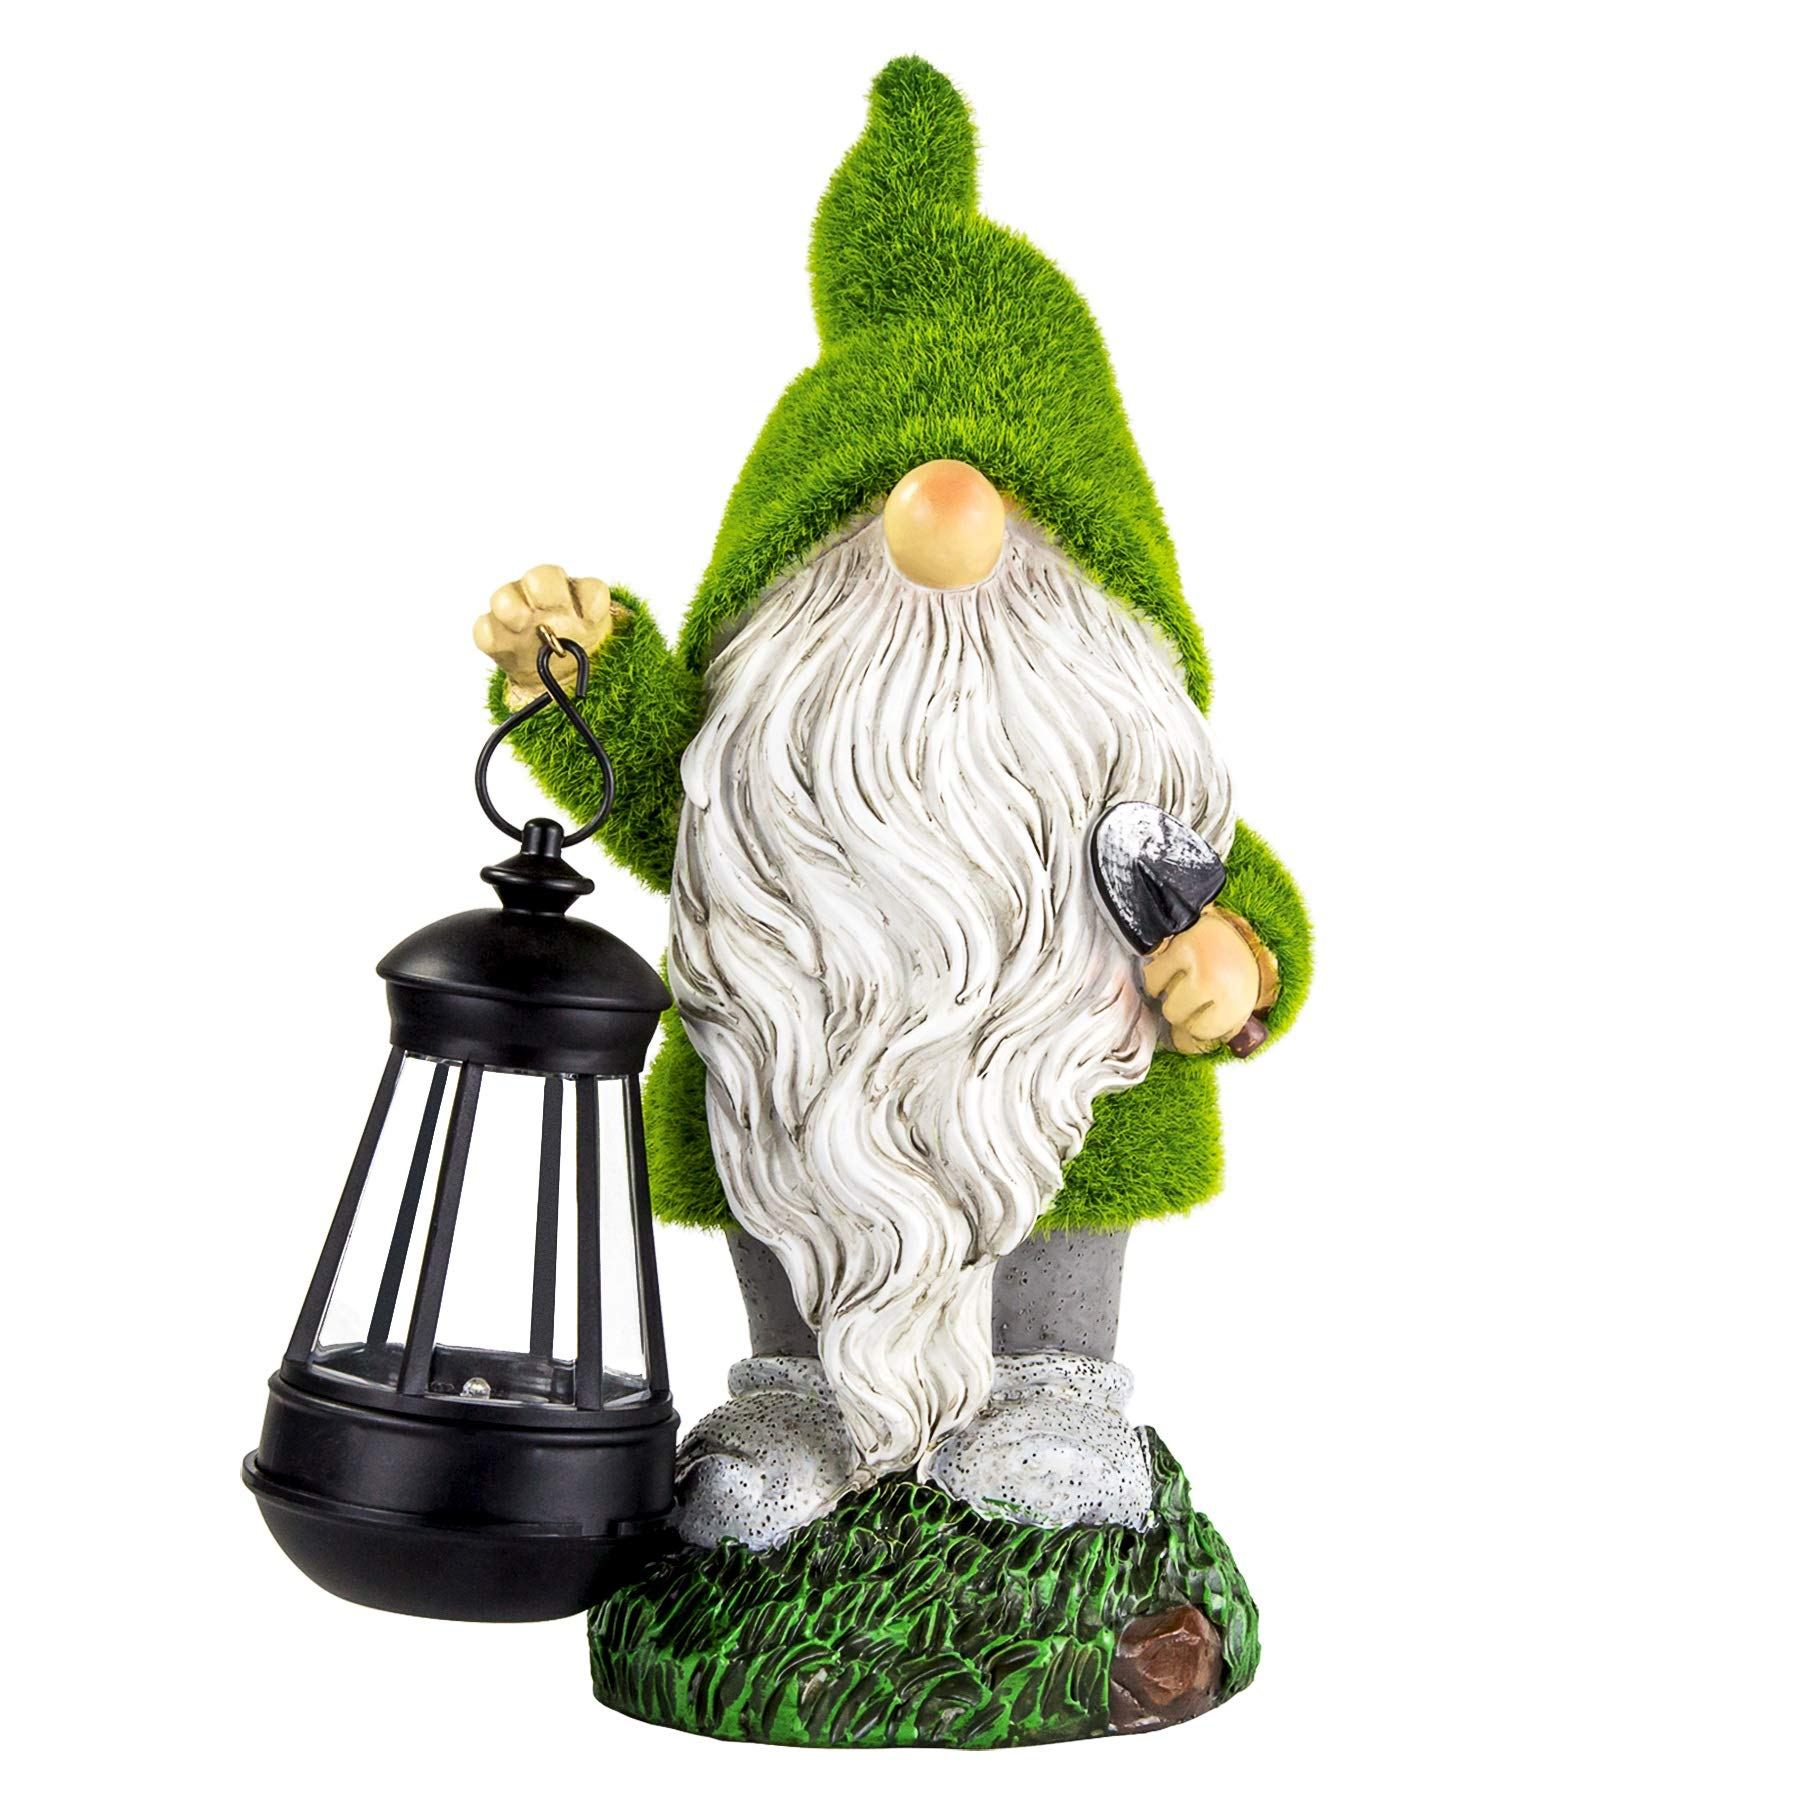 Garden Gnome Statues Garden Figurines with Solar Lights Flocked Gnome Figurine for